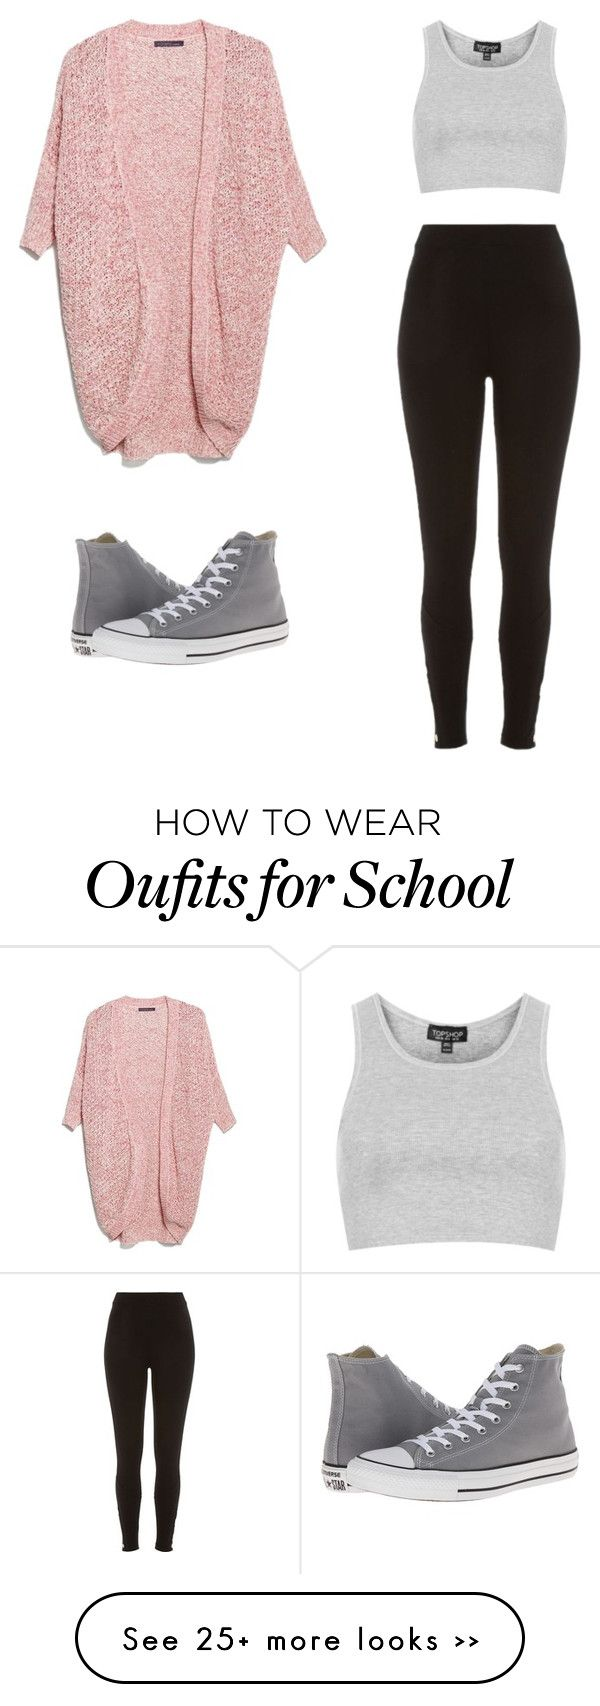 """school"" by annikalabonte on Polyvore featuring MANGO, Topshop, River Island and Converse"